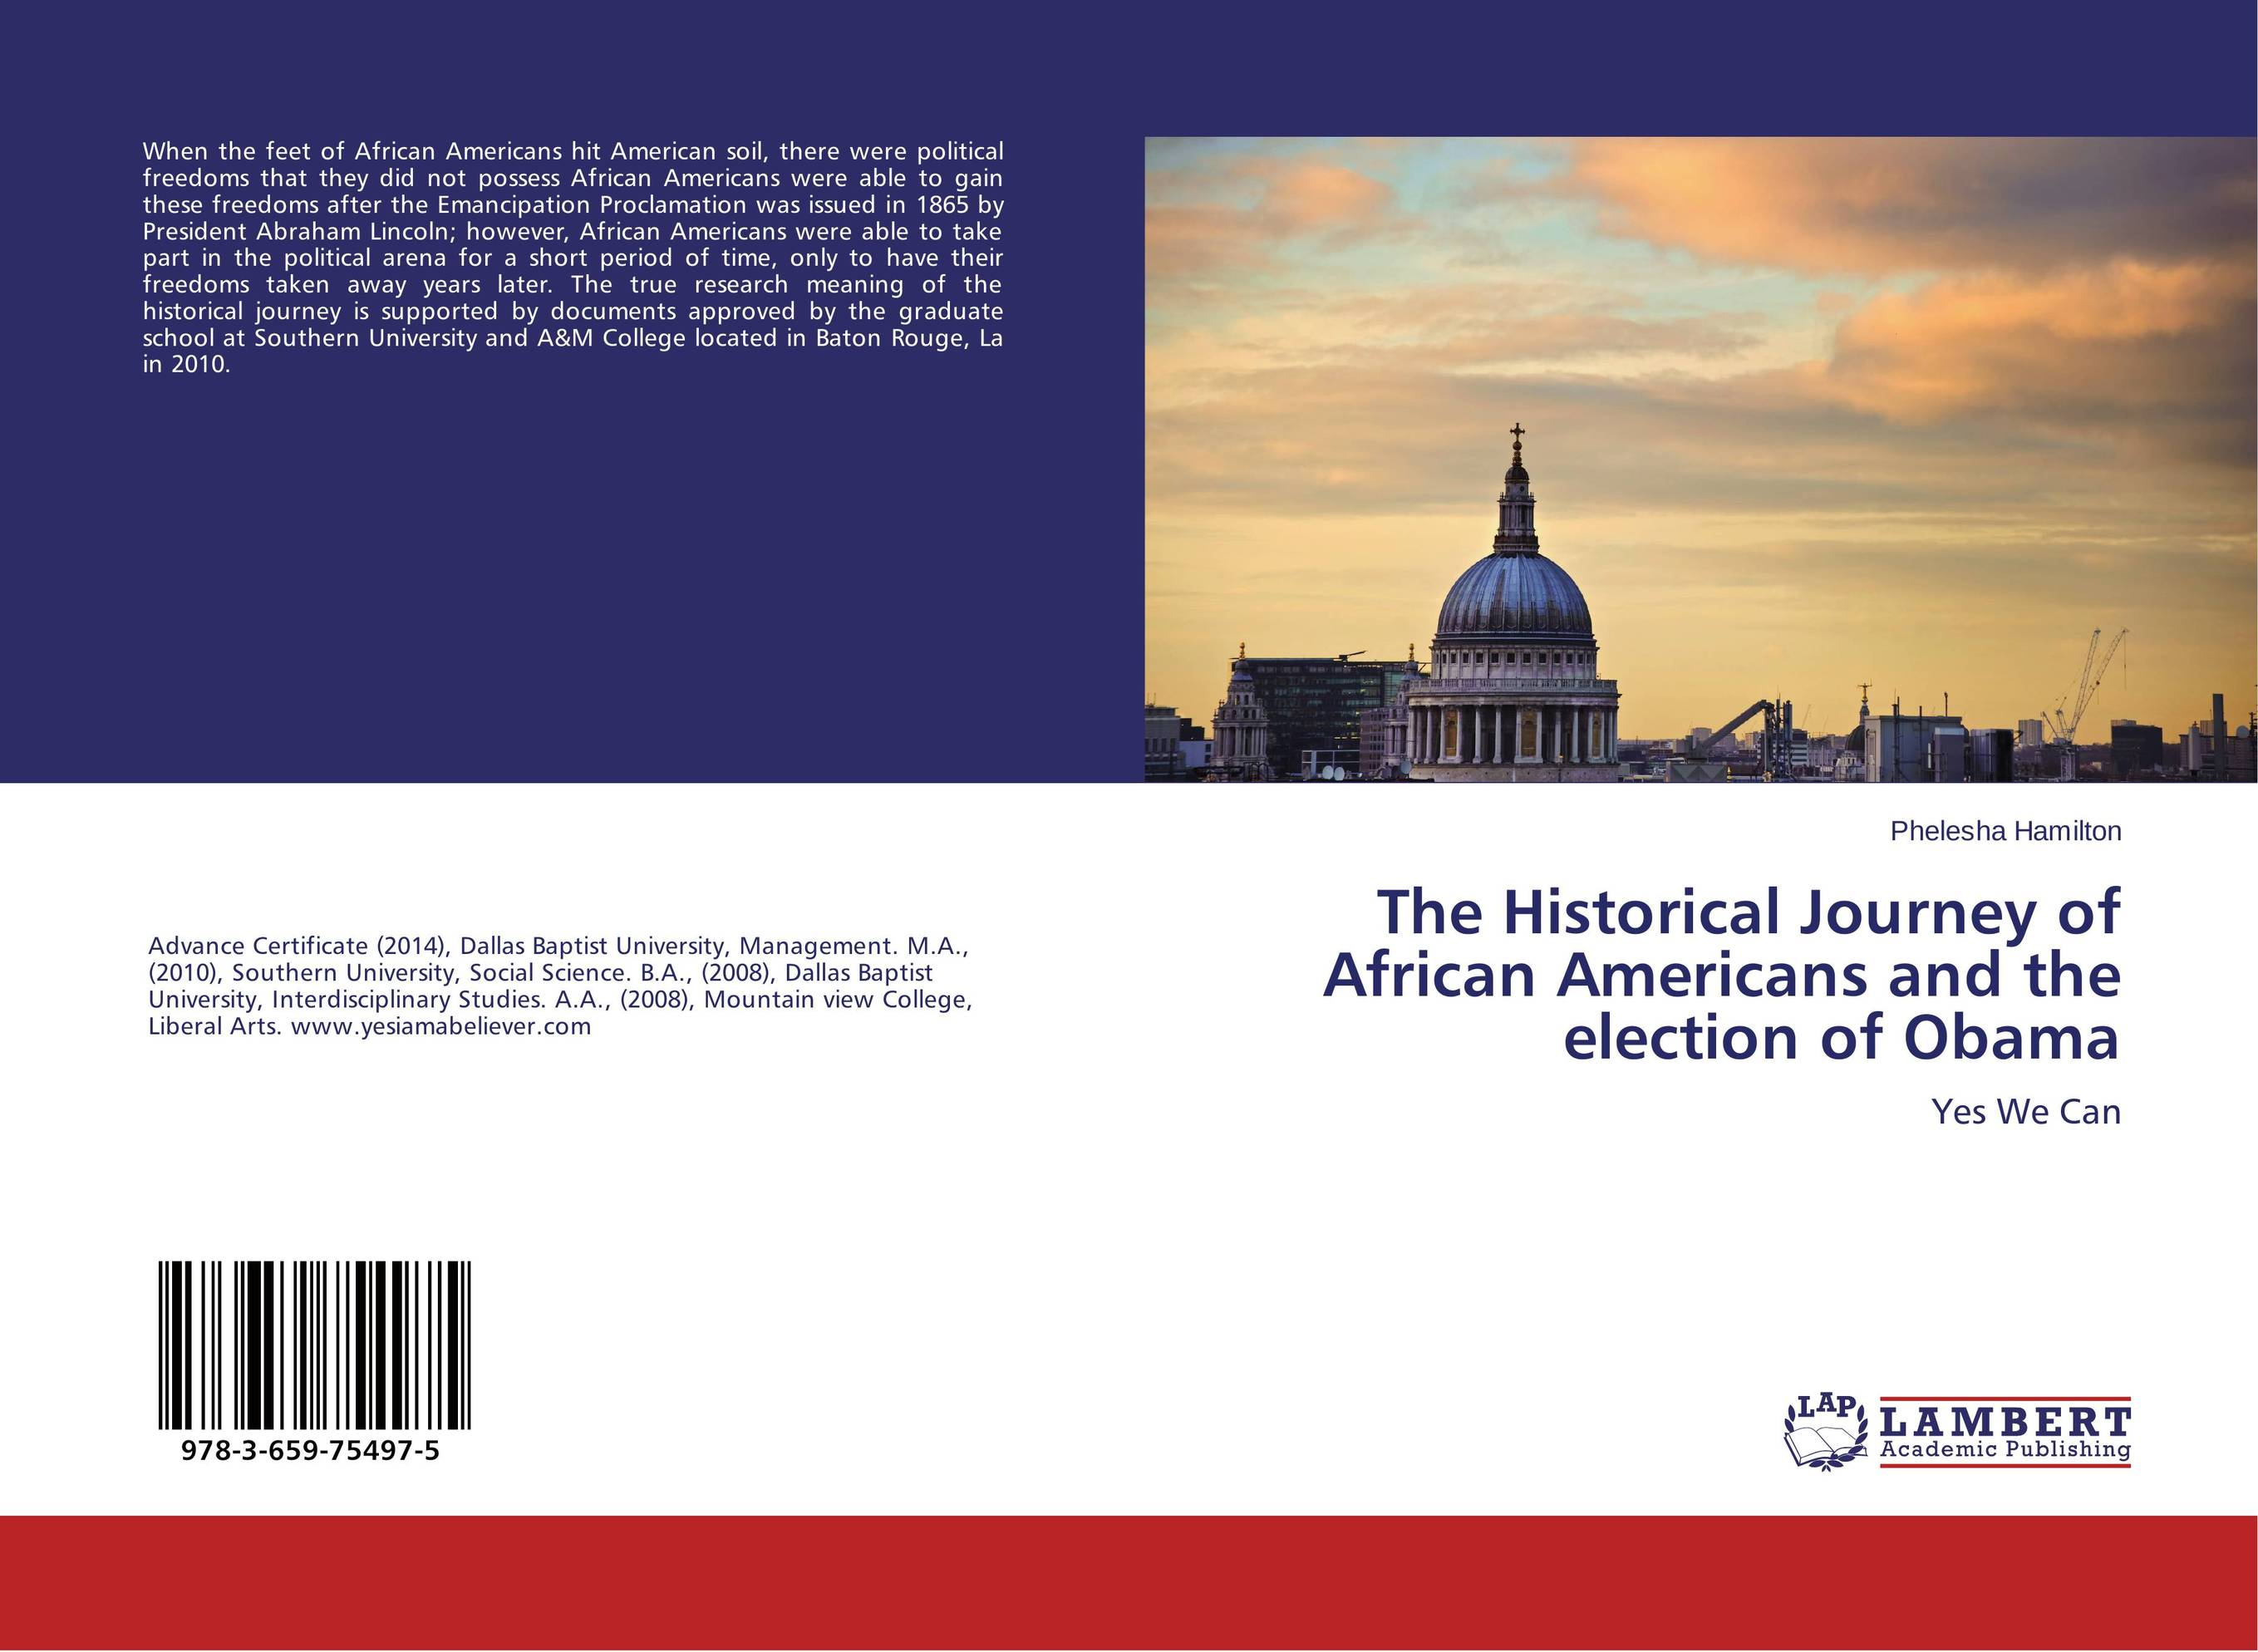 The Historical Journey of African Americans and the election of Obama